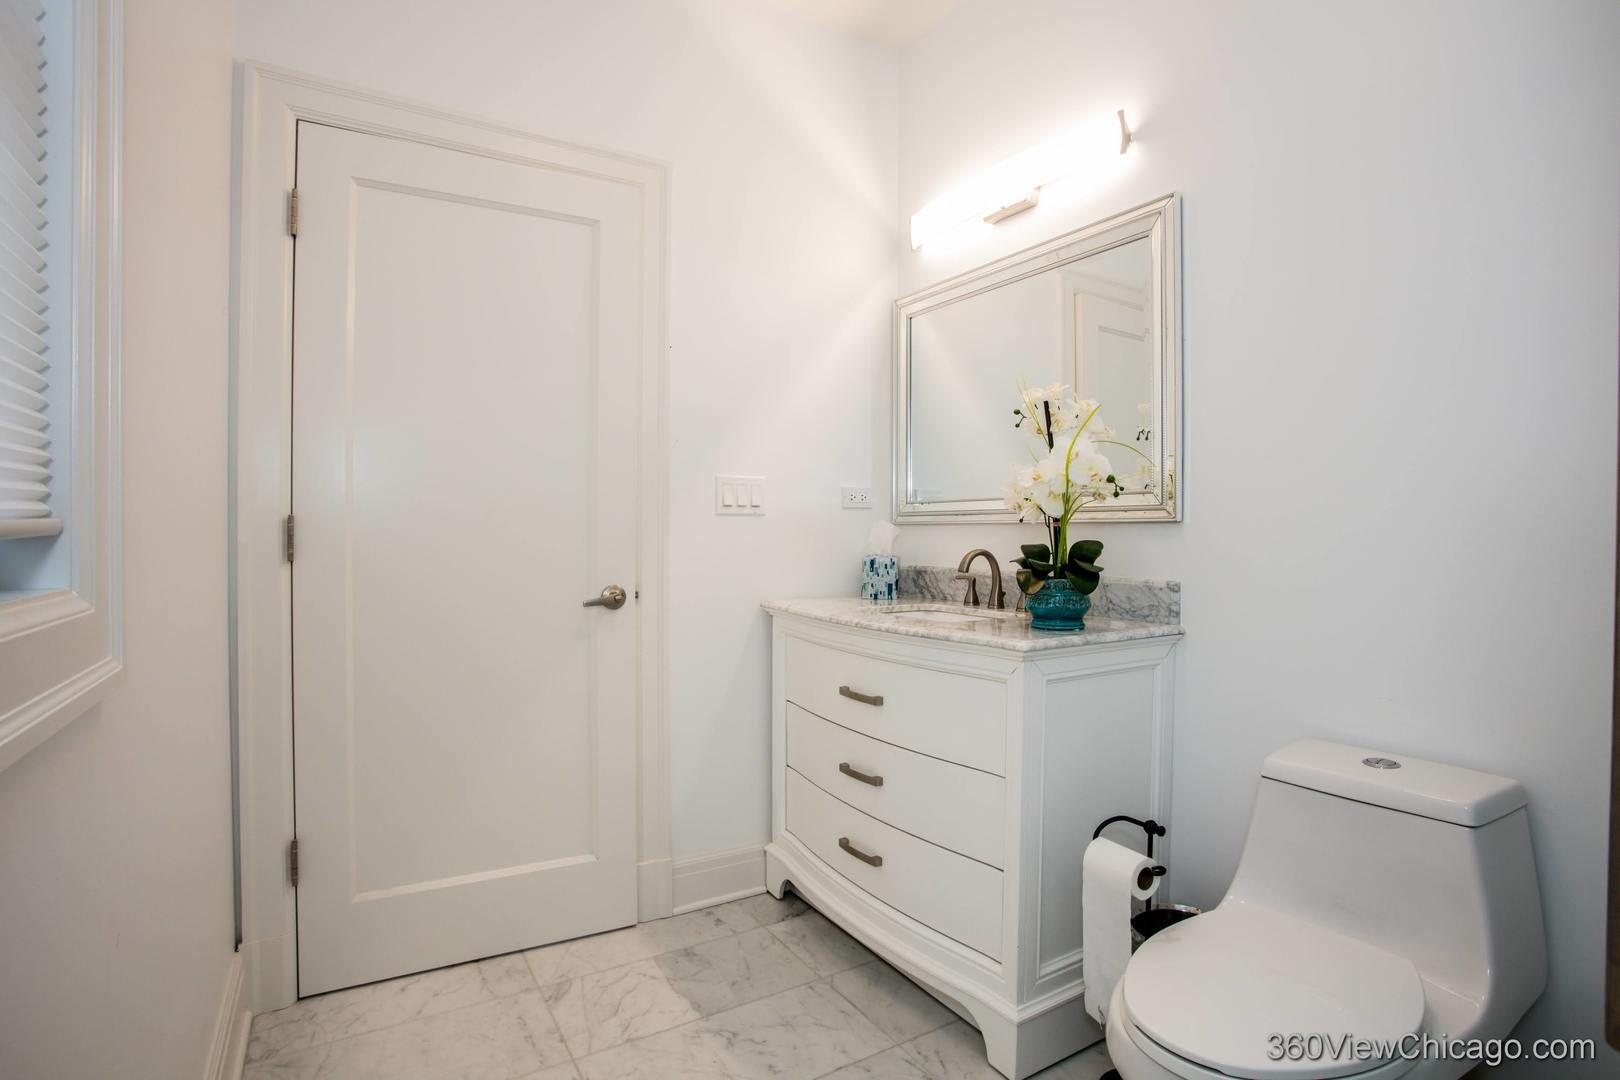 Photo 20: Photos: 1733 Troy Street in Chicago: CHI - Humboldt Park Residential for sale ()  : MLS®# 10911567